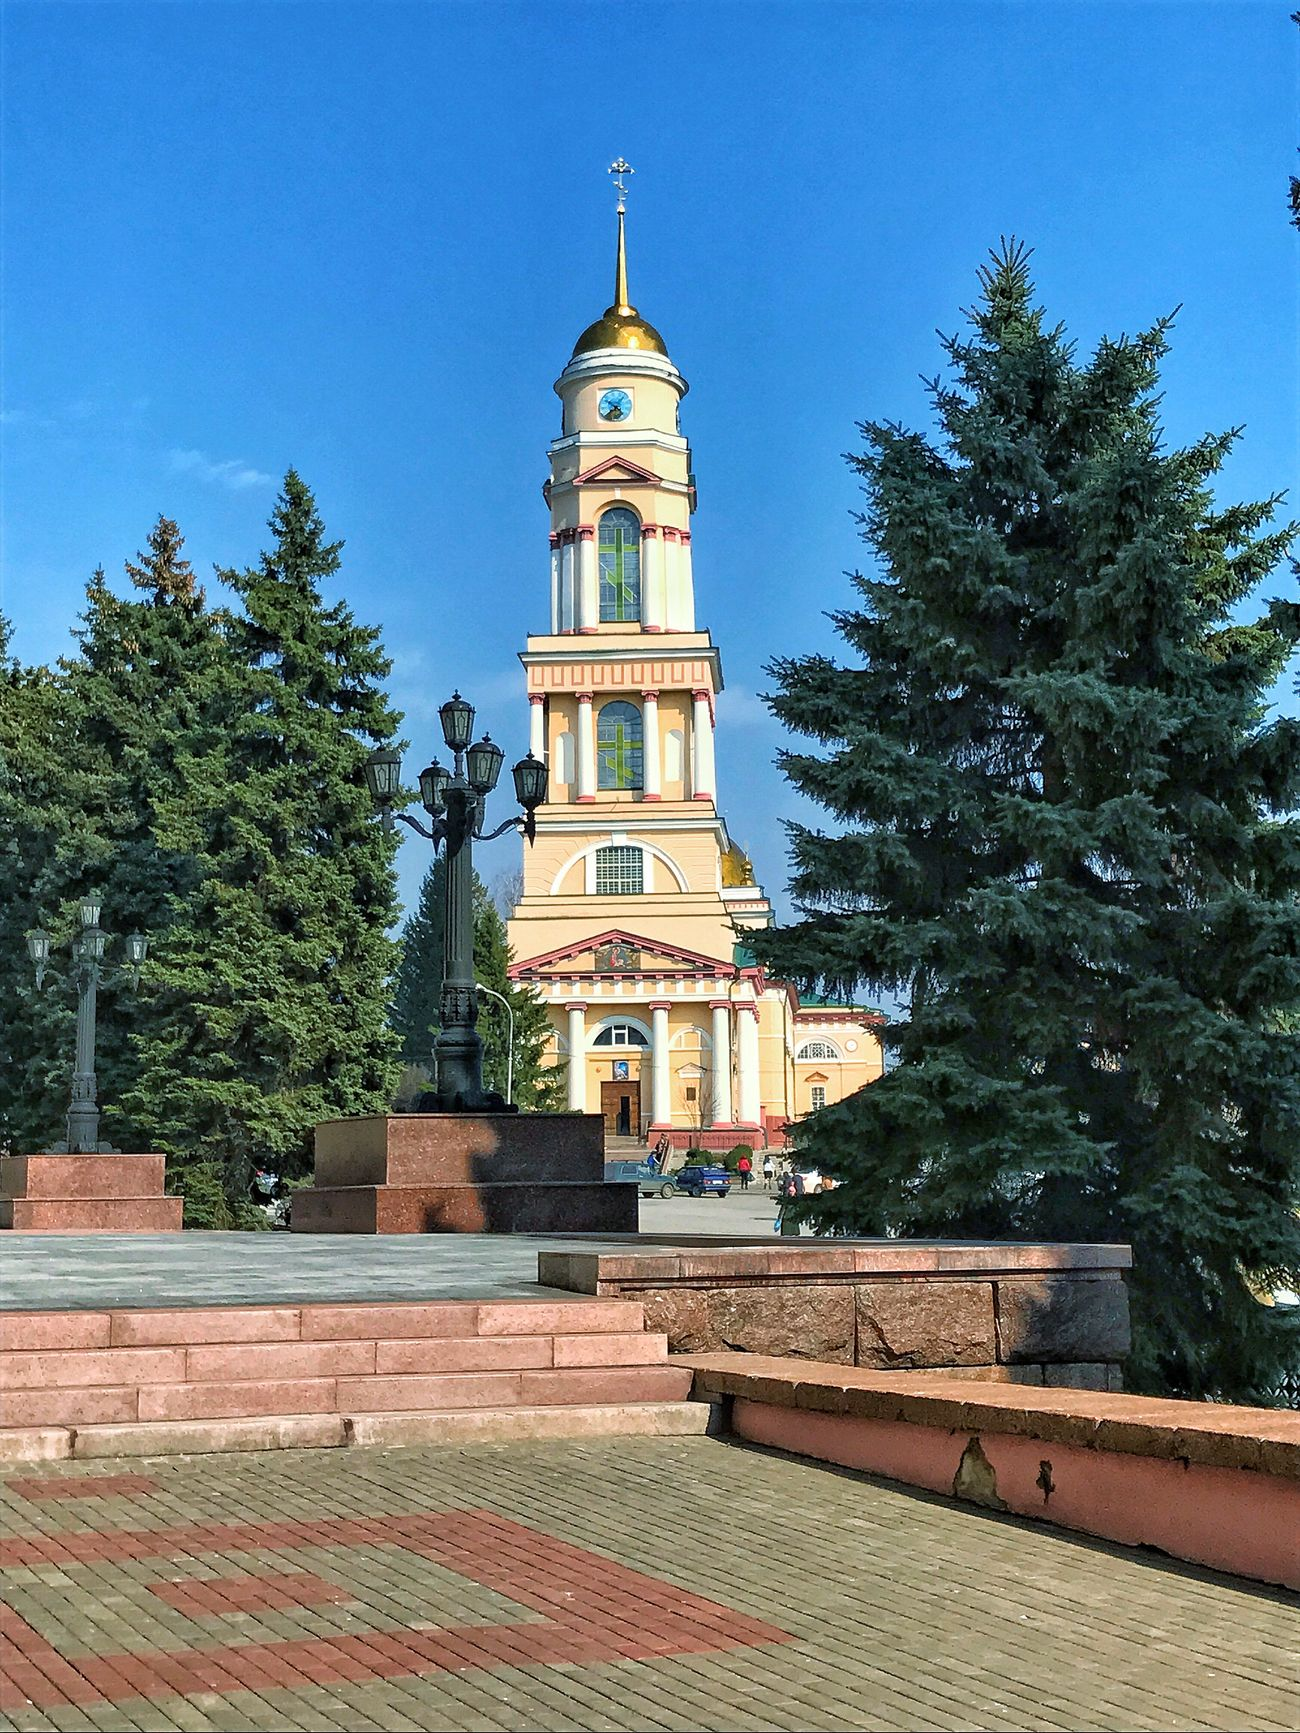 Building Exterior Religion Architecture Built Structure Place Of Worship Spirituality Tree Outdoors Low Angle View No People Travel Destinations Sky Day Statue Cultures липецк Lipetsk